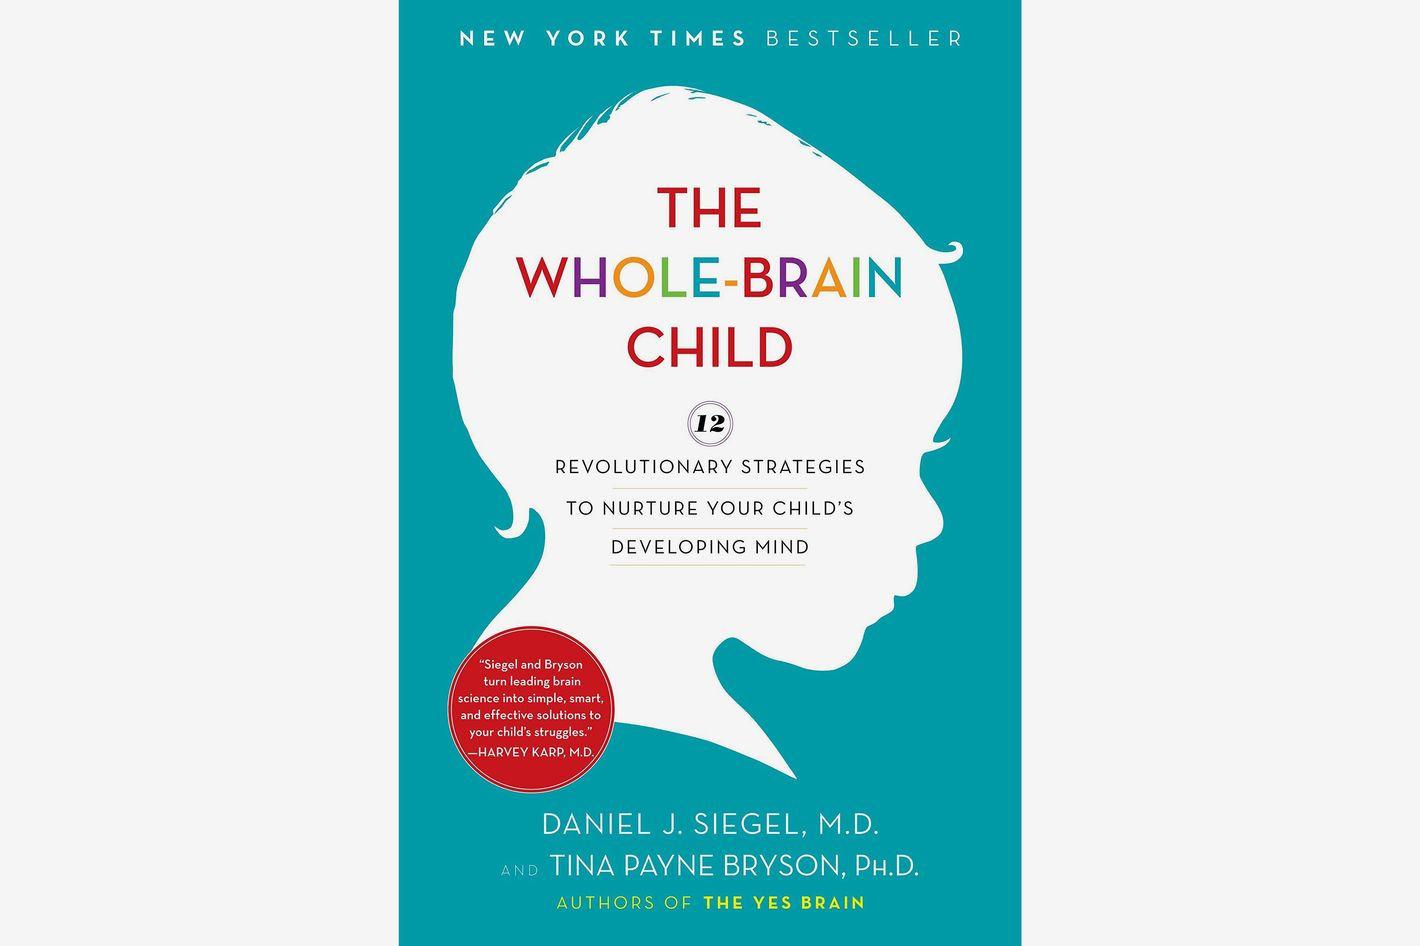 <em>The Whole-Brain Child: 12 Revolutionary Strategies to Nurture Your Child's Developing Mind</em>, by Daniel J. Siegel and Tina Payne Bryson